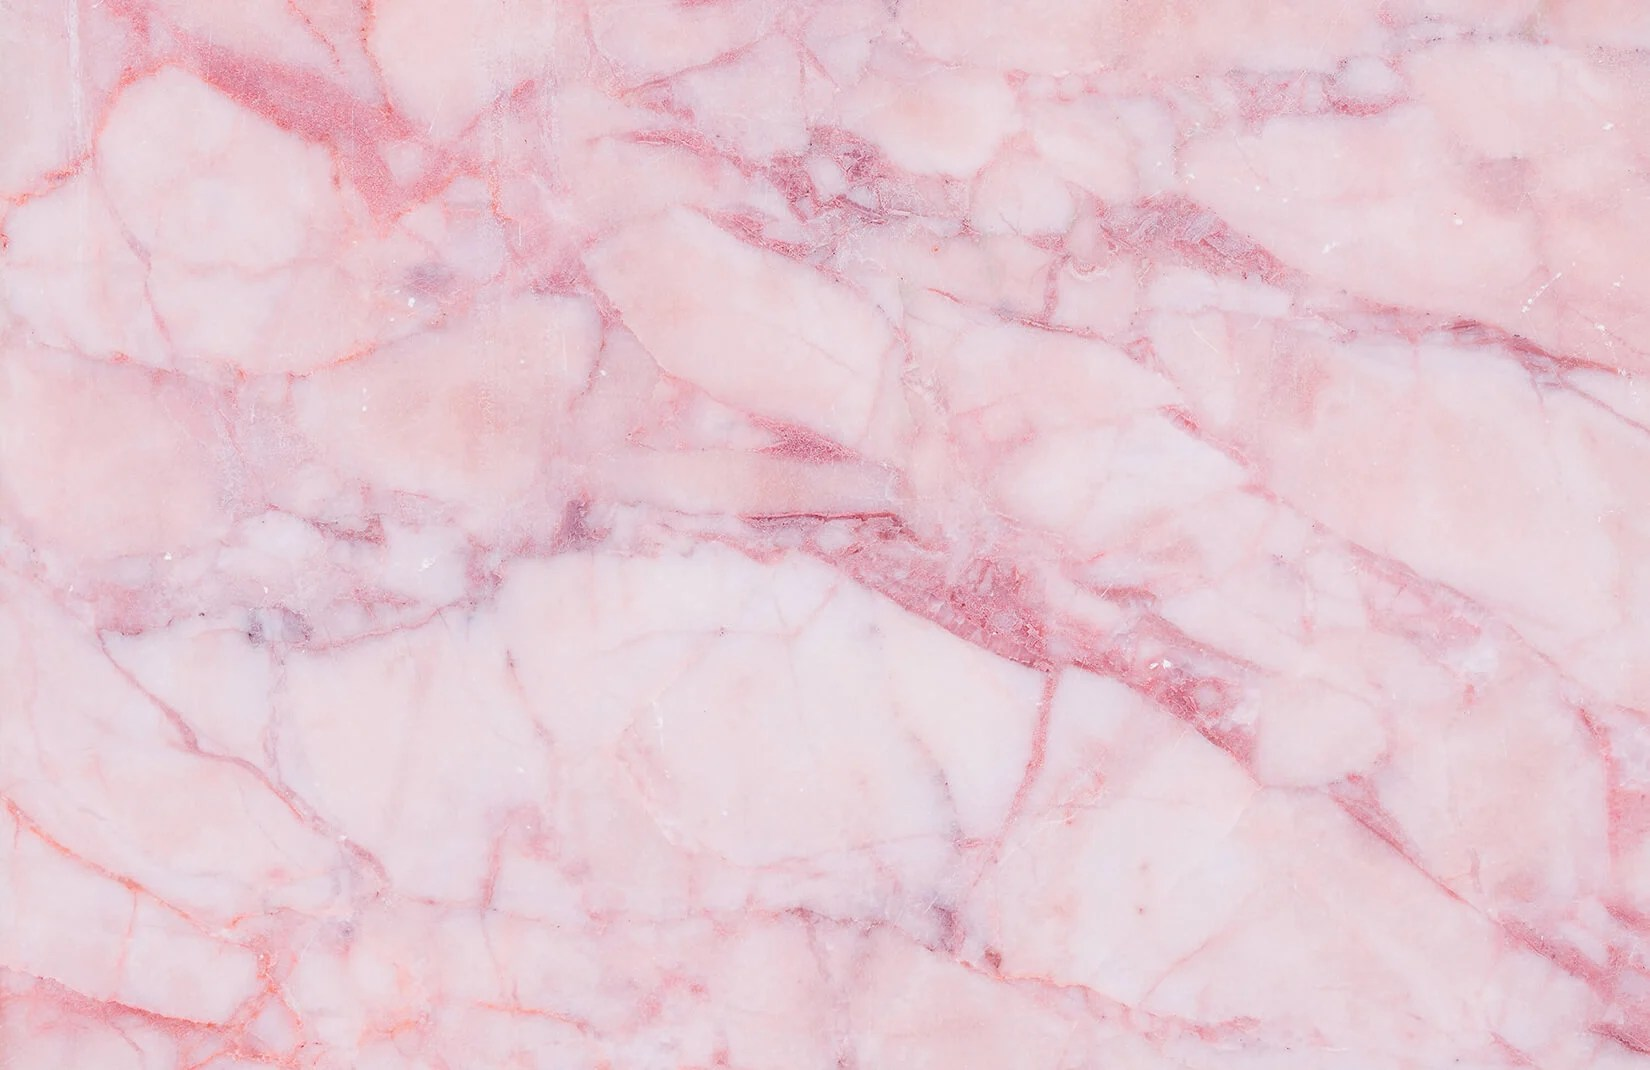 Fall Leaves Wallpaper Macbook Pink Marble Background Tumblr Pictures To Pin On Pinterest